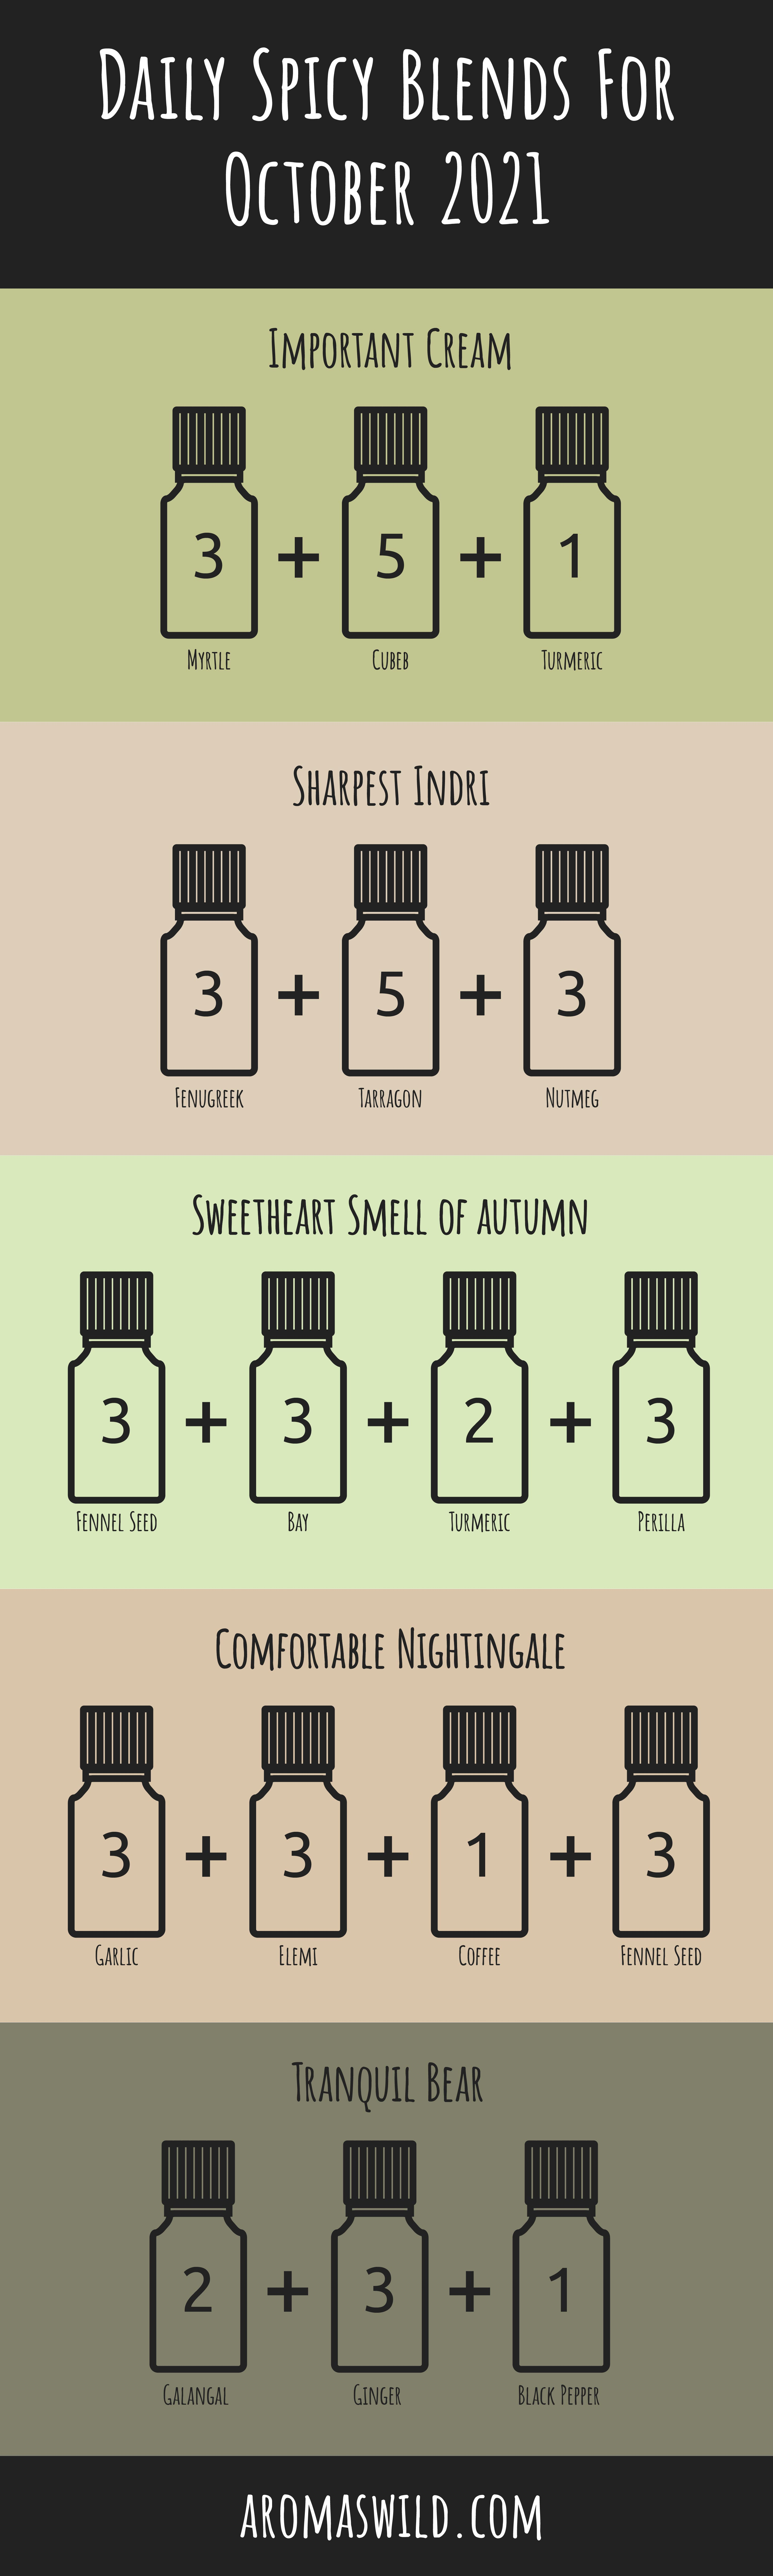 Spicy Essential Oil Recipes To Use In Diffuser – Daily Spicy Blends For March 15 October 2021